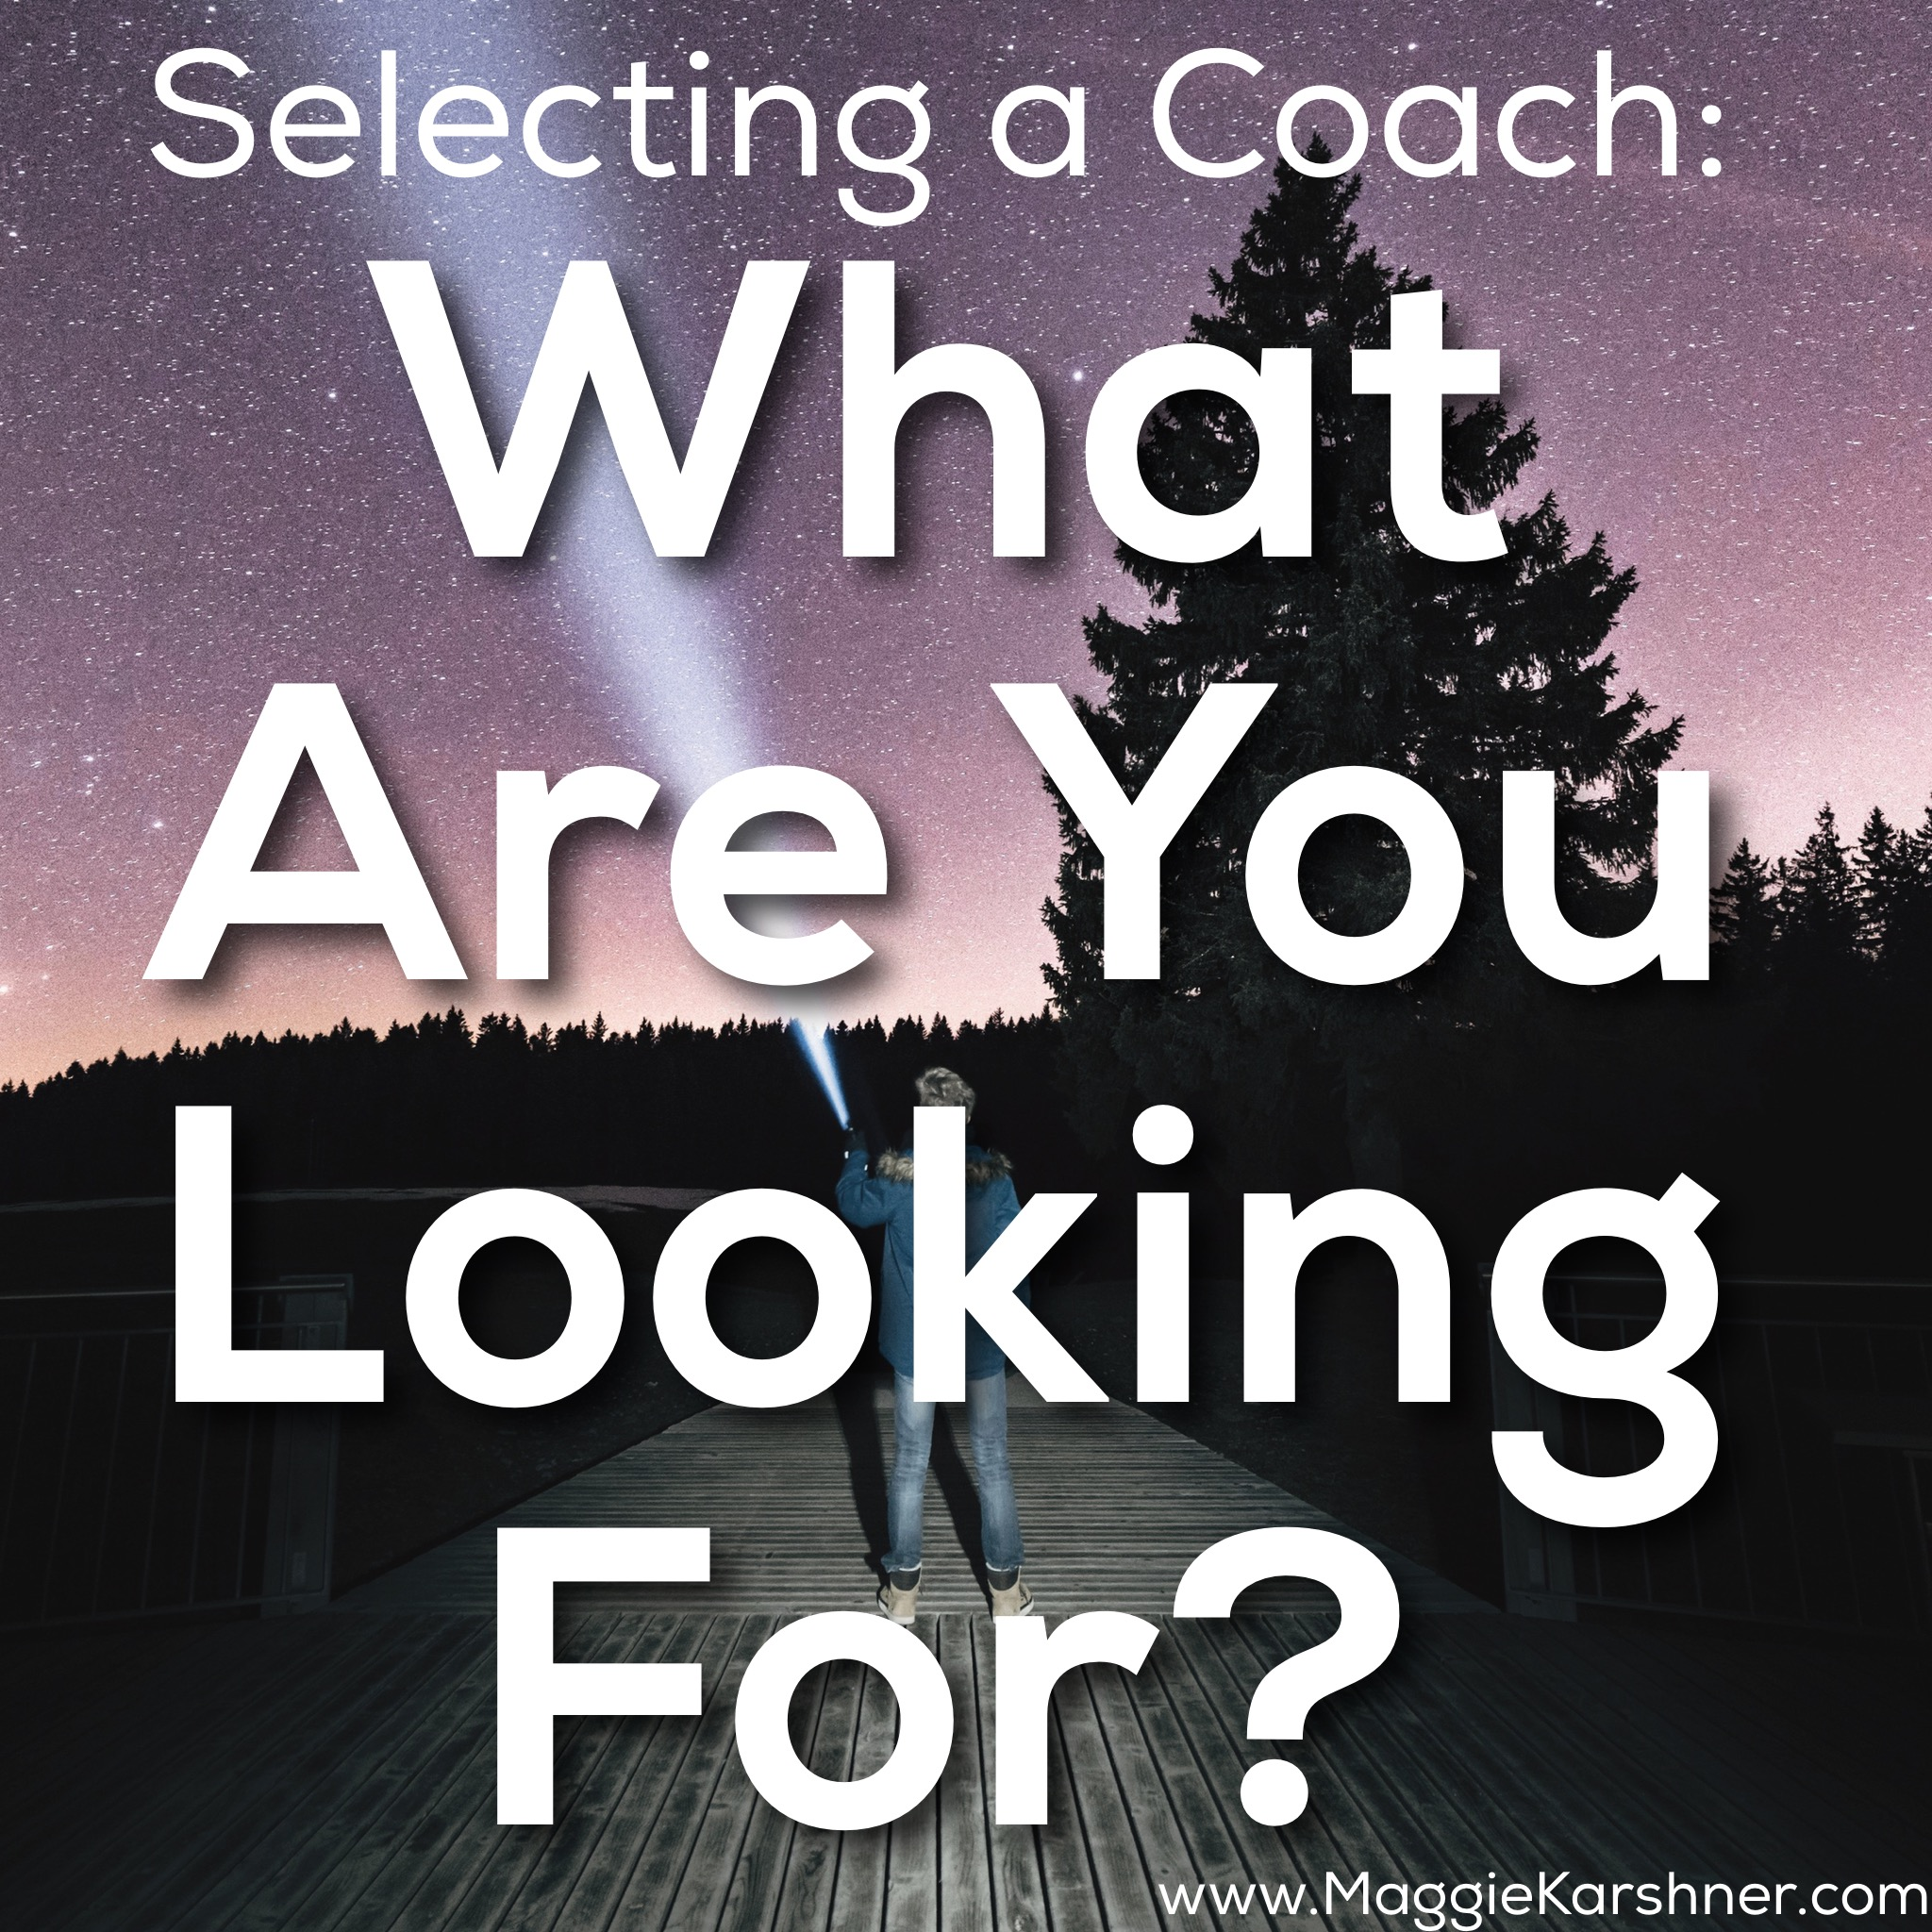 Selecting-a-Coach_What-are-You-Looking-For